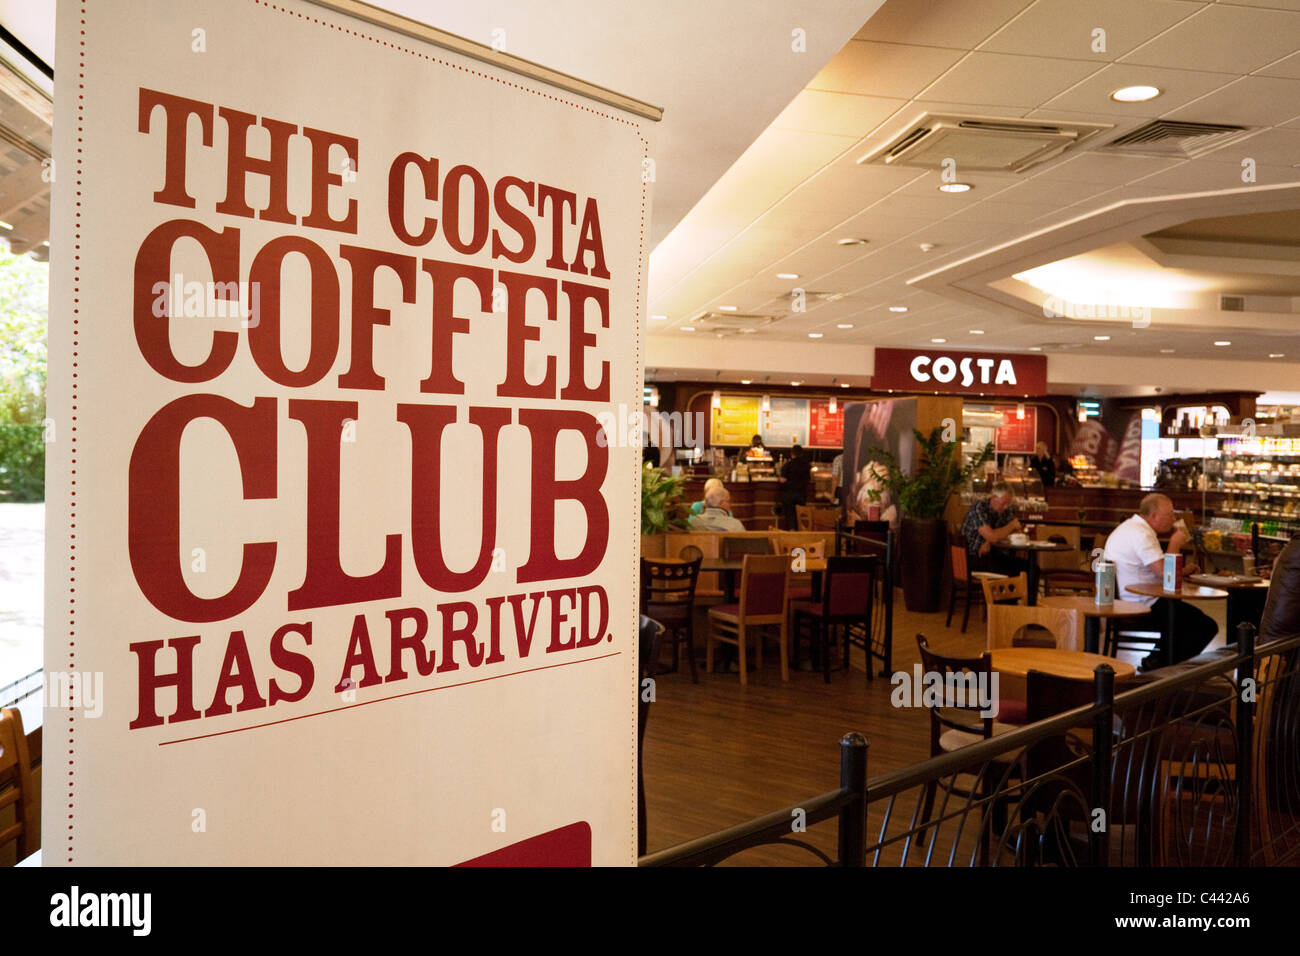 Sign advertising the Costa Coffee club, Costa coffee, Clacket Lane motorway service station, M25, Surrey UK - Stock Image